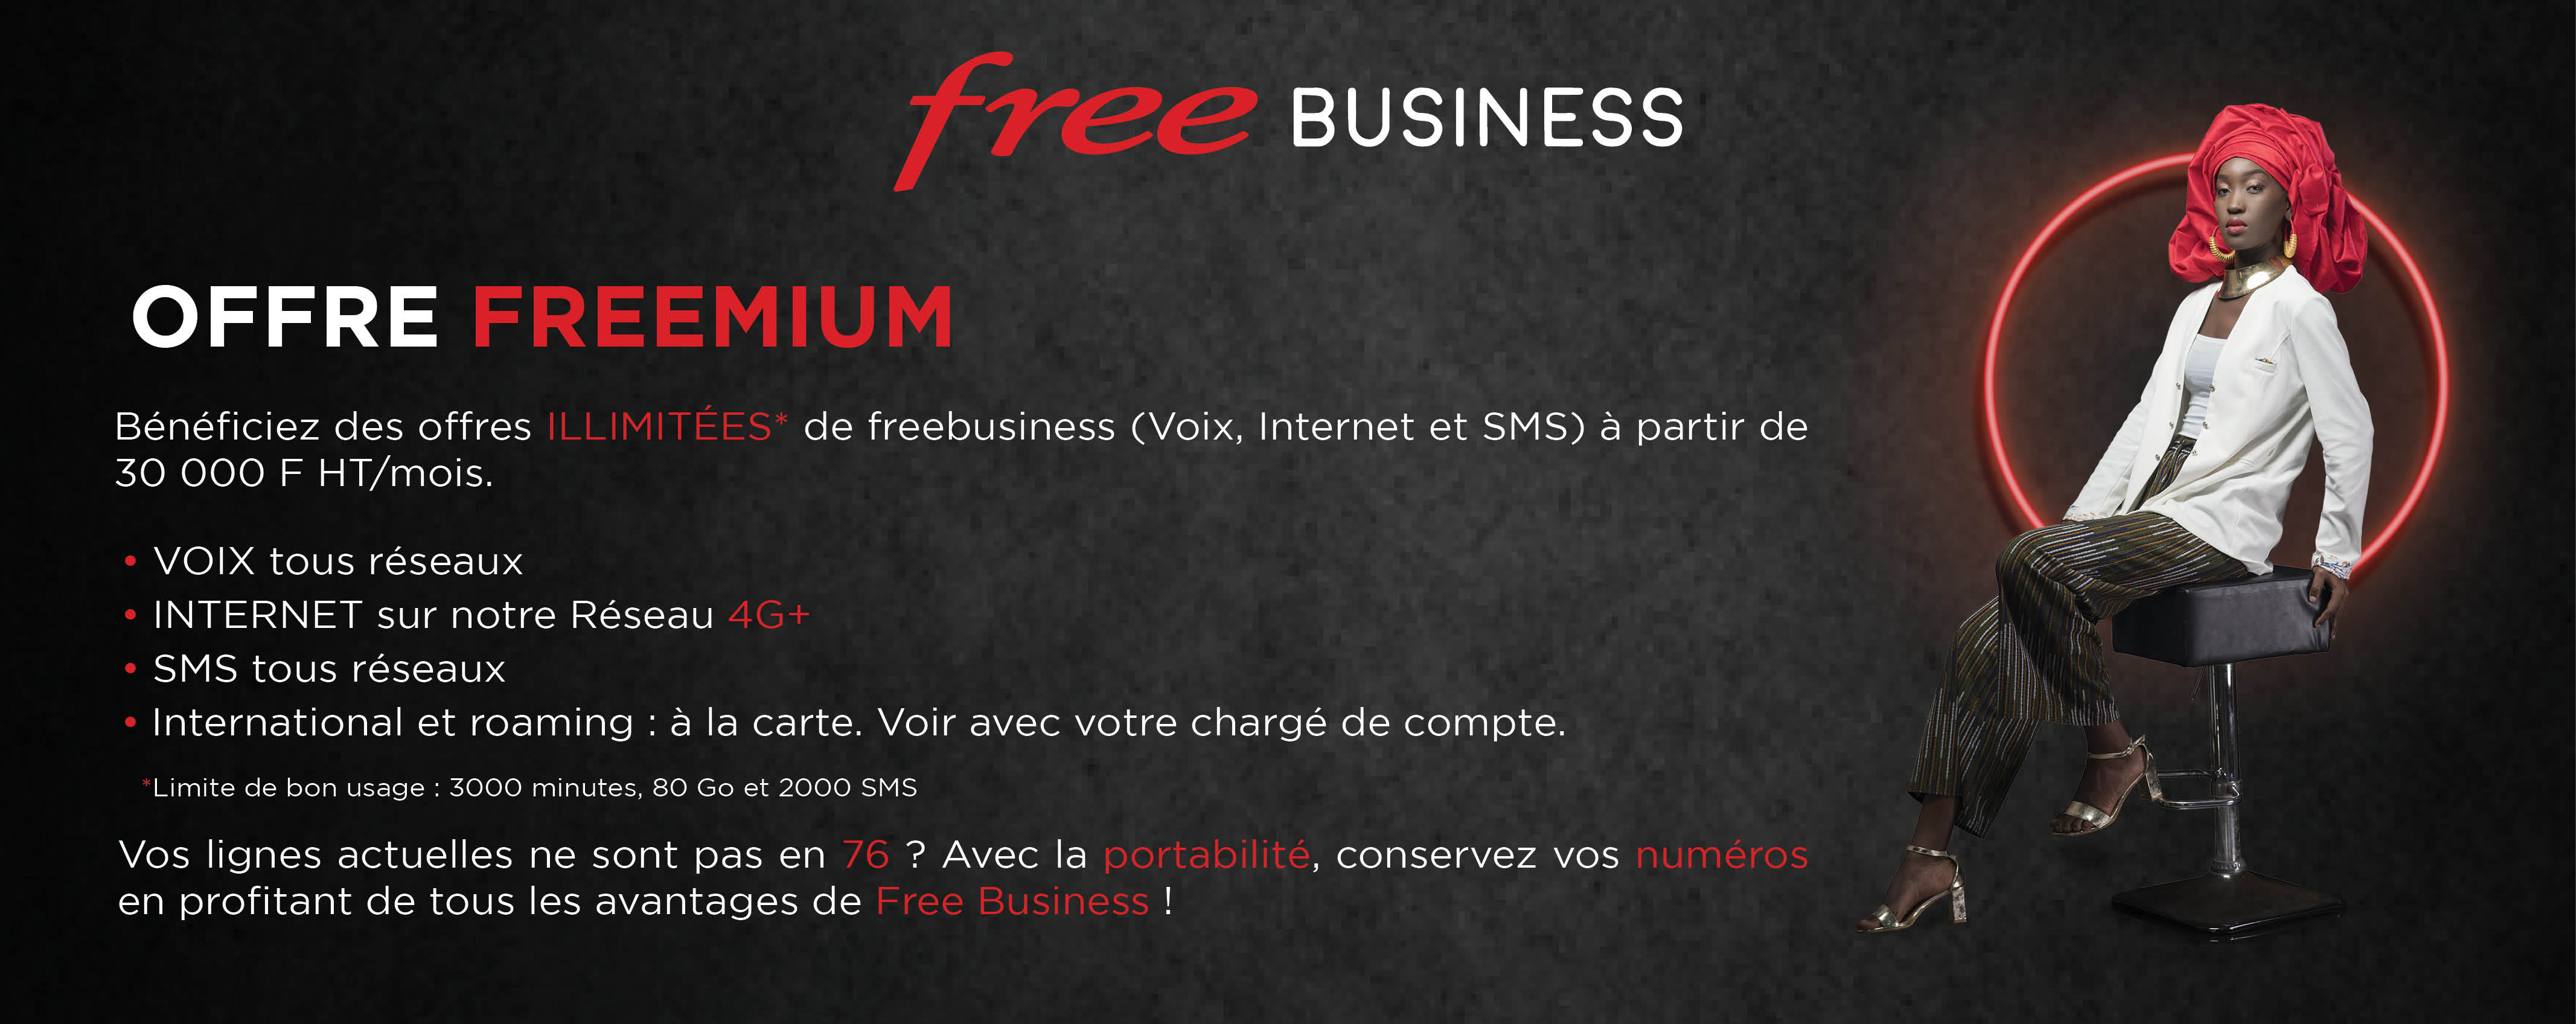 Offre Premium Free Business